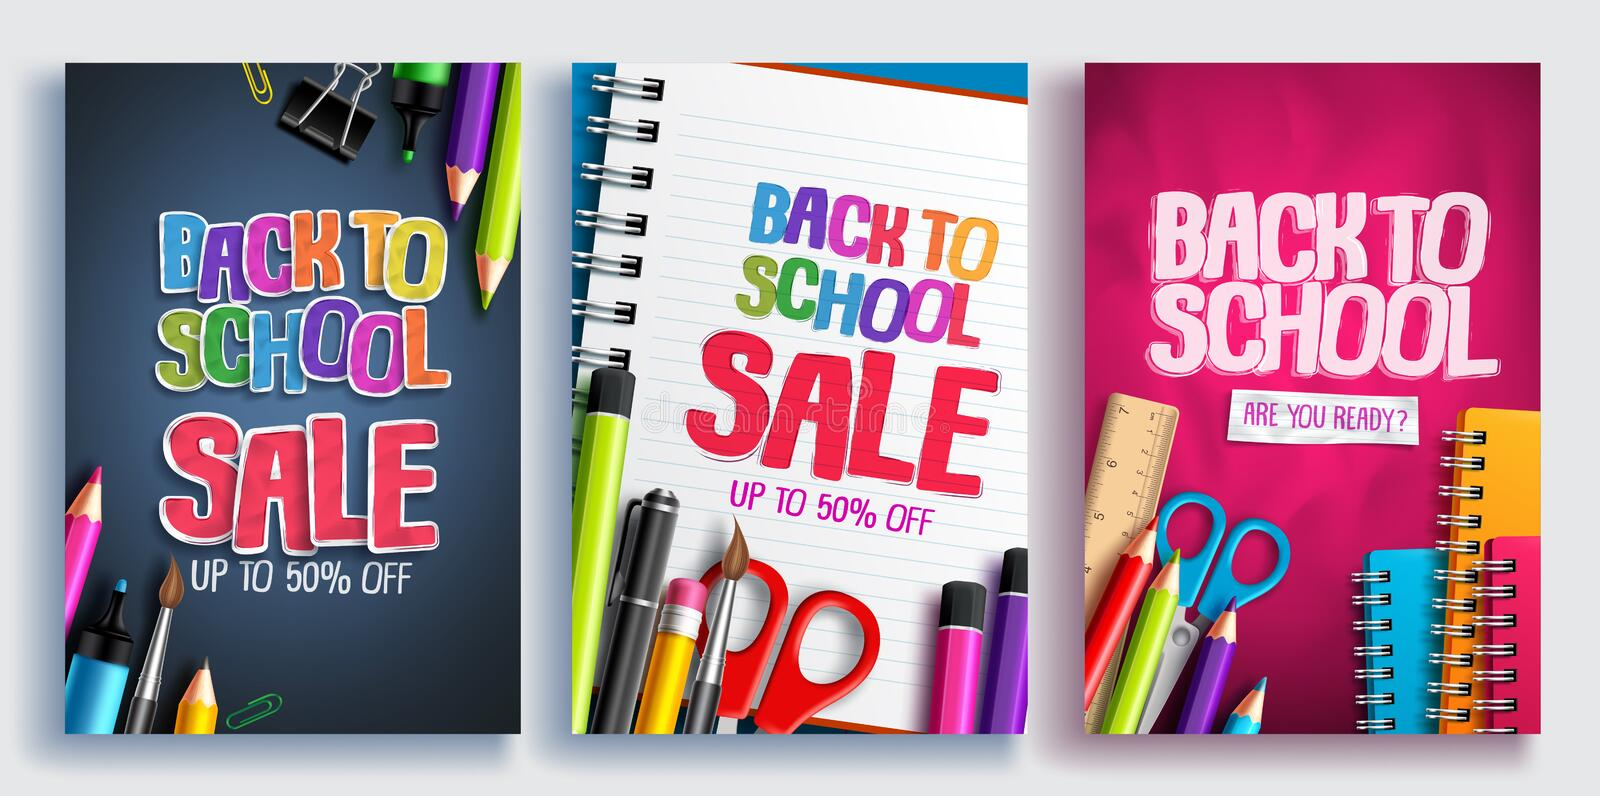 Back to school sale vector poster design set with colorful school supplies, educational items stock illustration